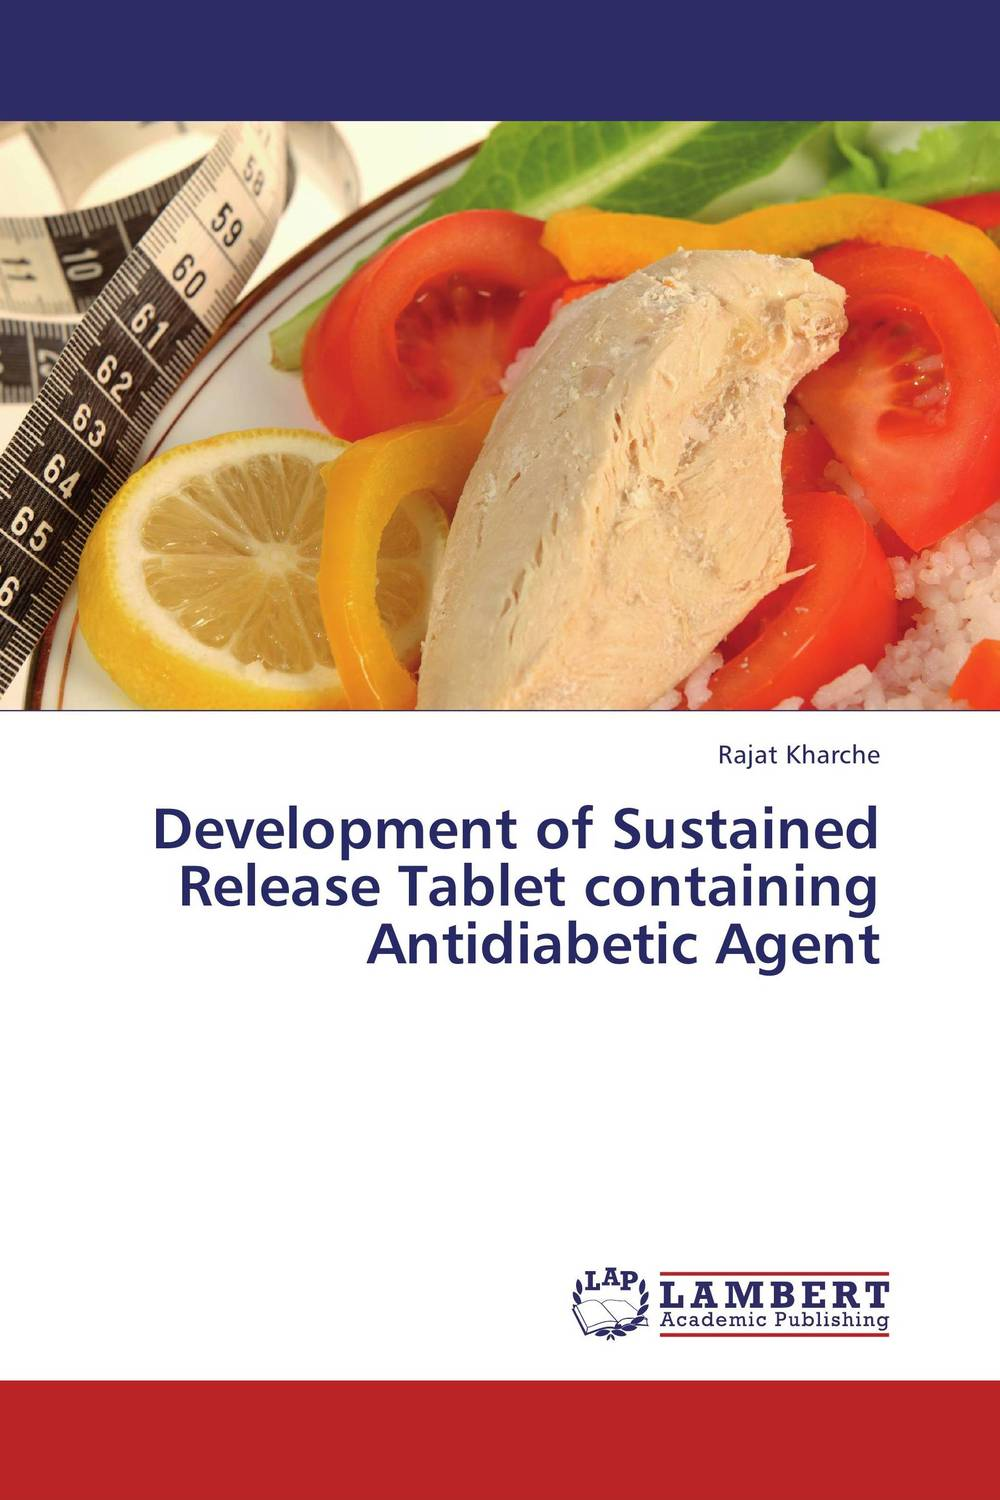 Development of Sustained Release Tablet containing Antidiabetic Agent the release